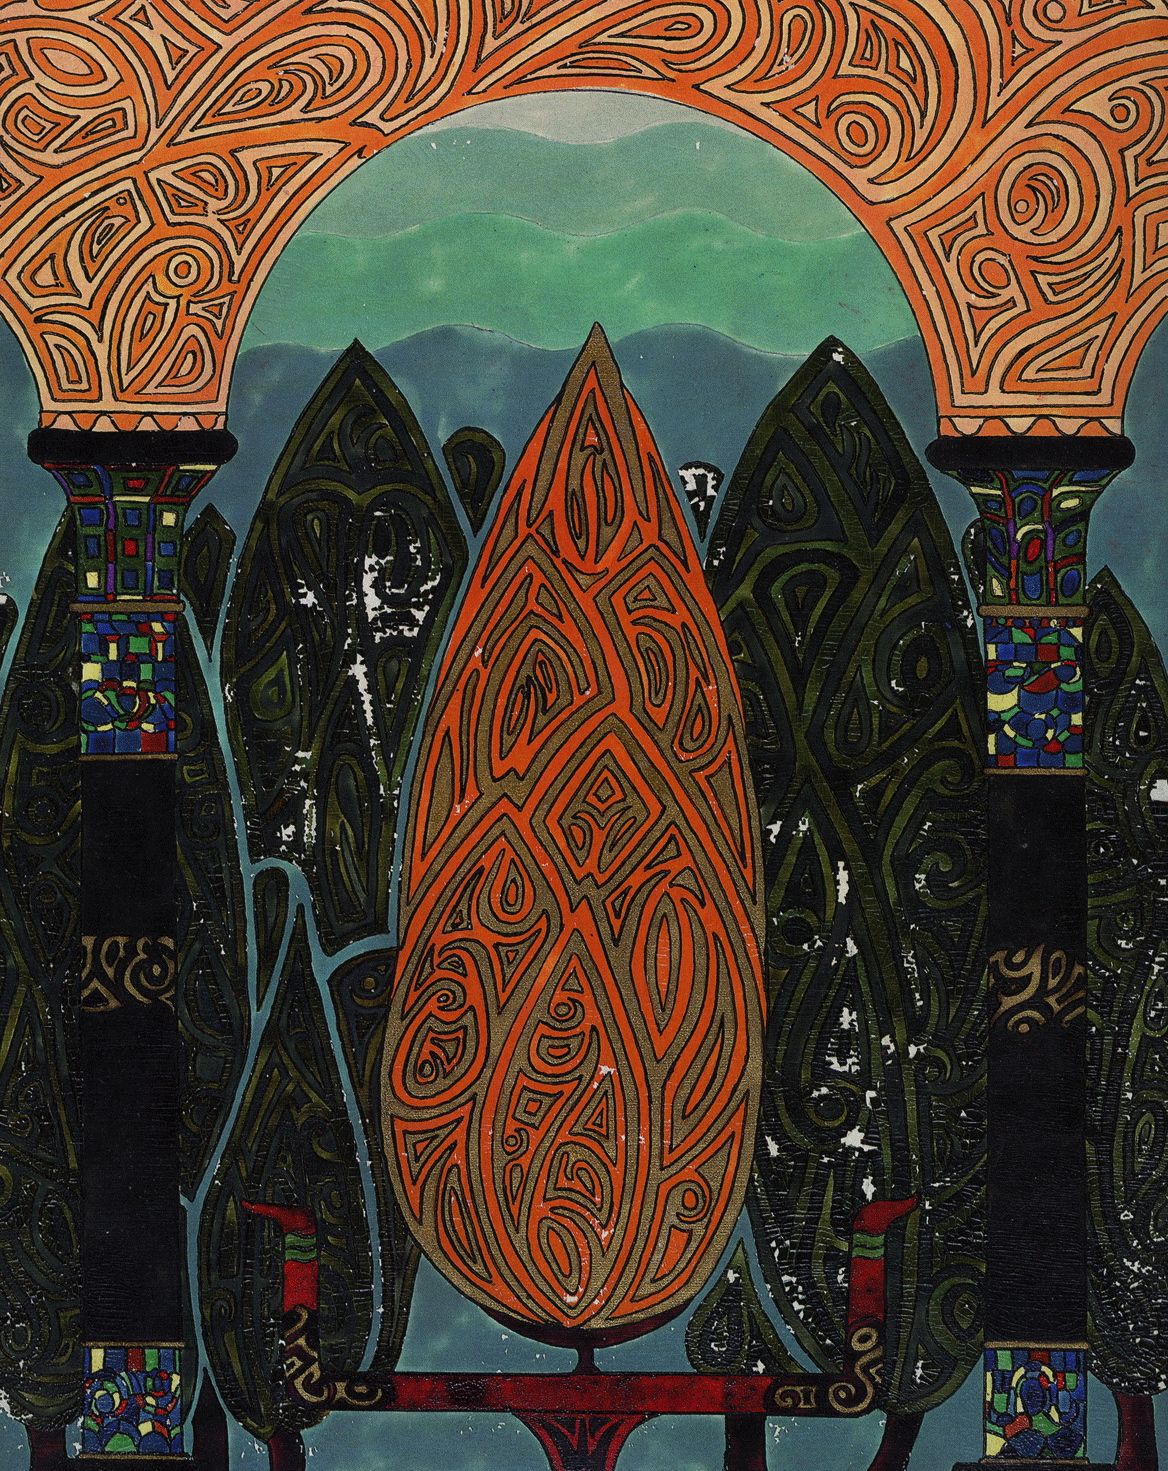 Illustration/painting by Carl G. Jung in his Red Book (Liber Novus) #pattern